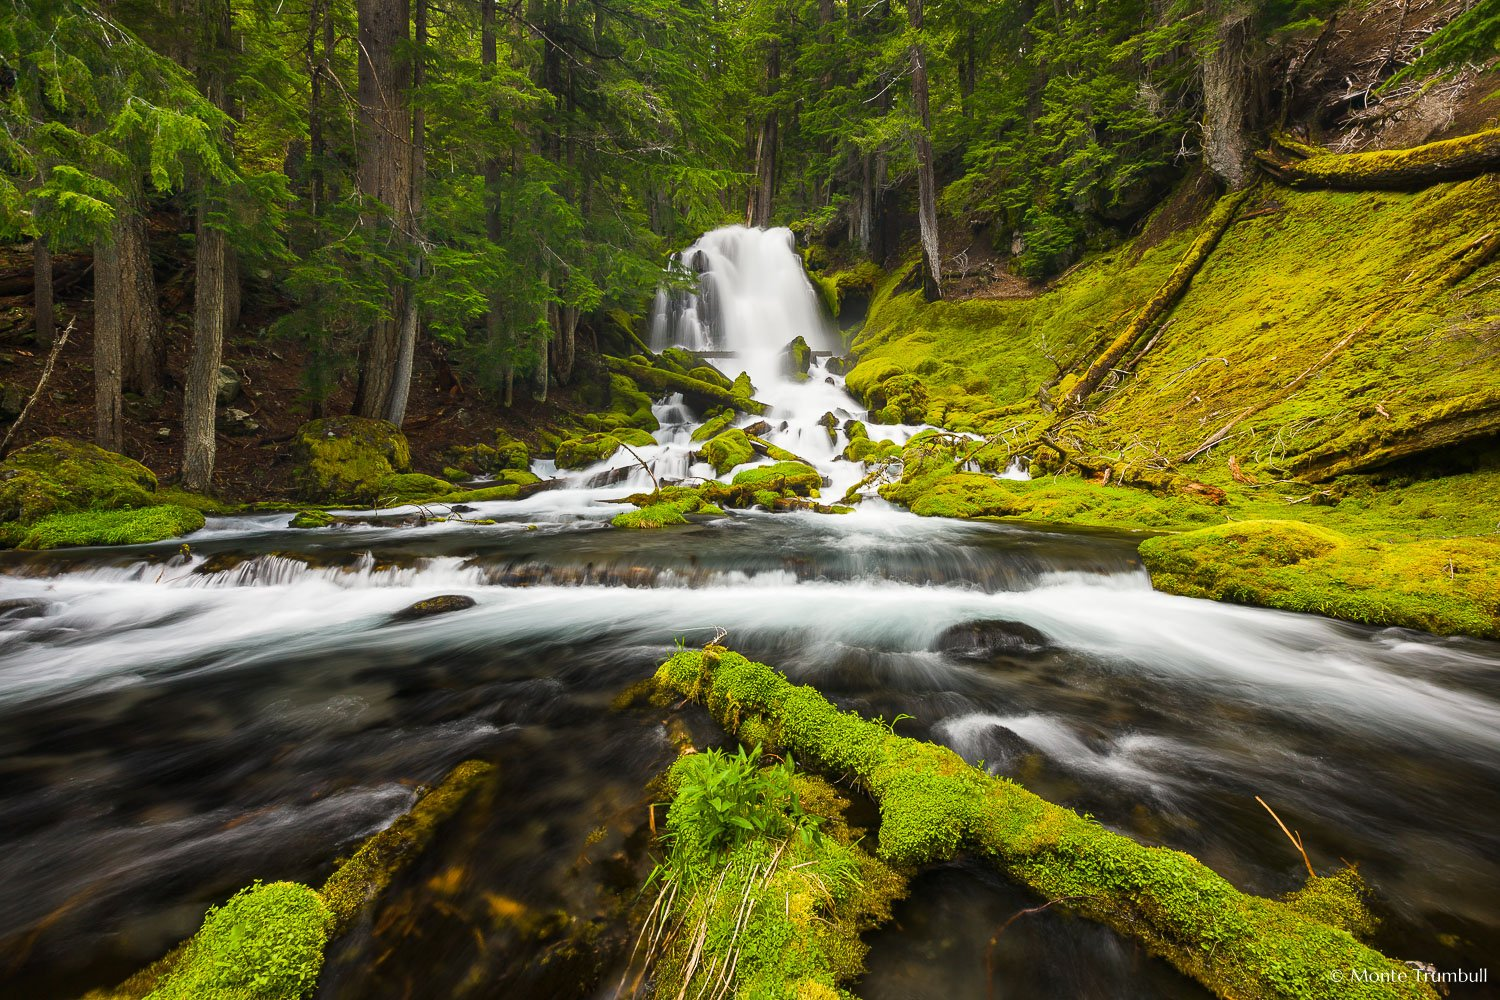 MT-20130528-174350-0121-Rough-Rider-Falls-Rogue-River-National-Forest-Oregon-spring.jpg